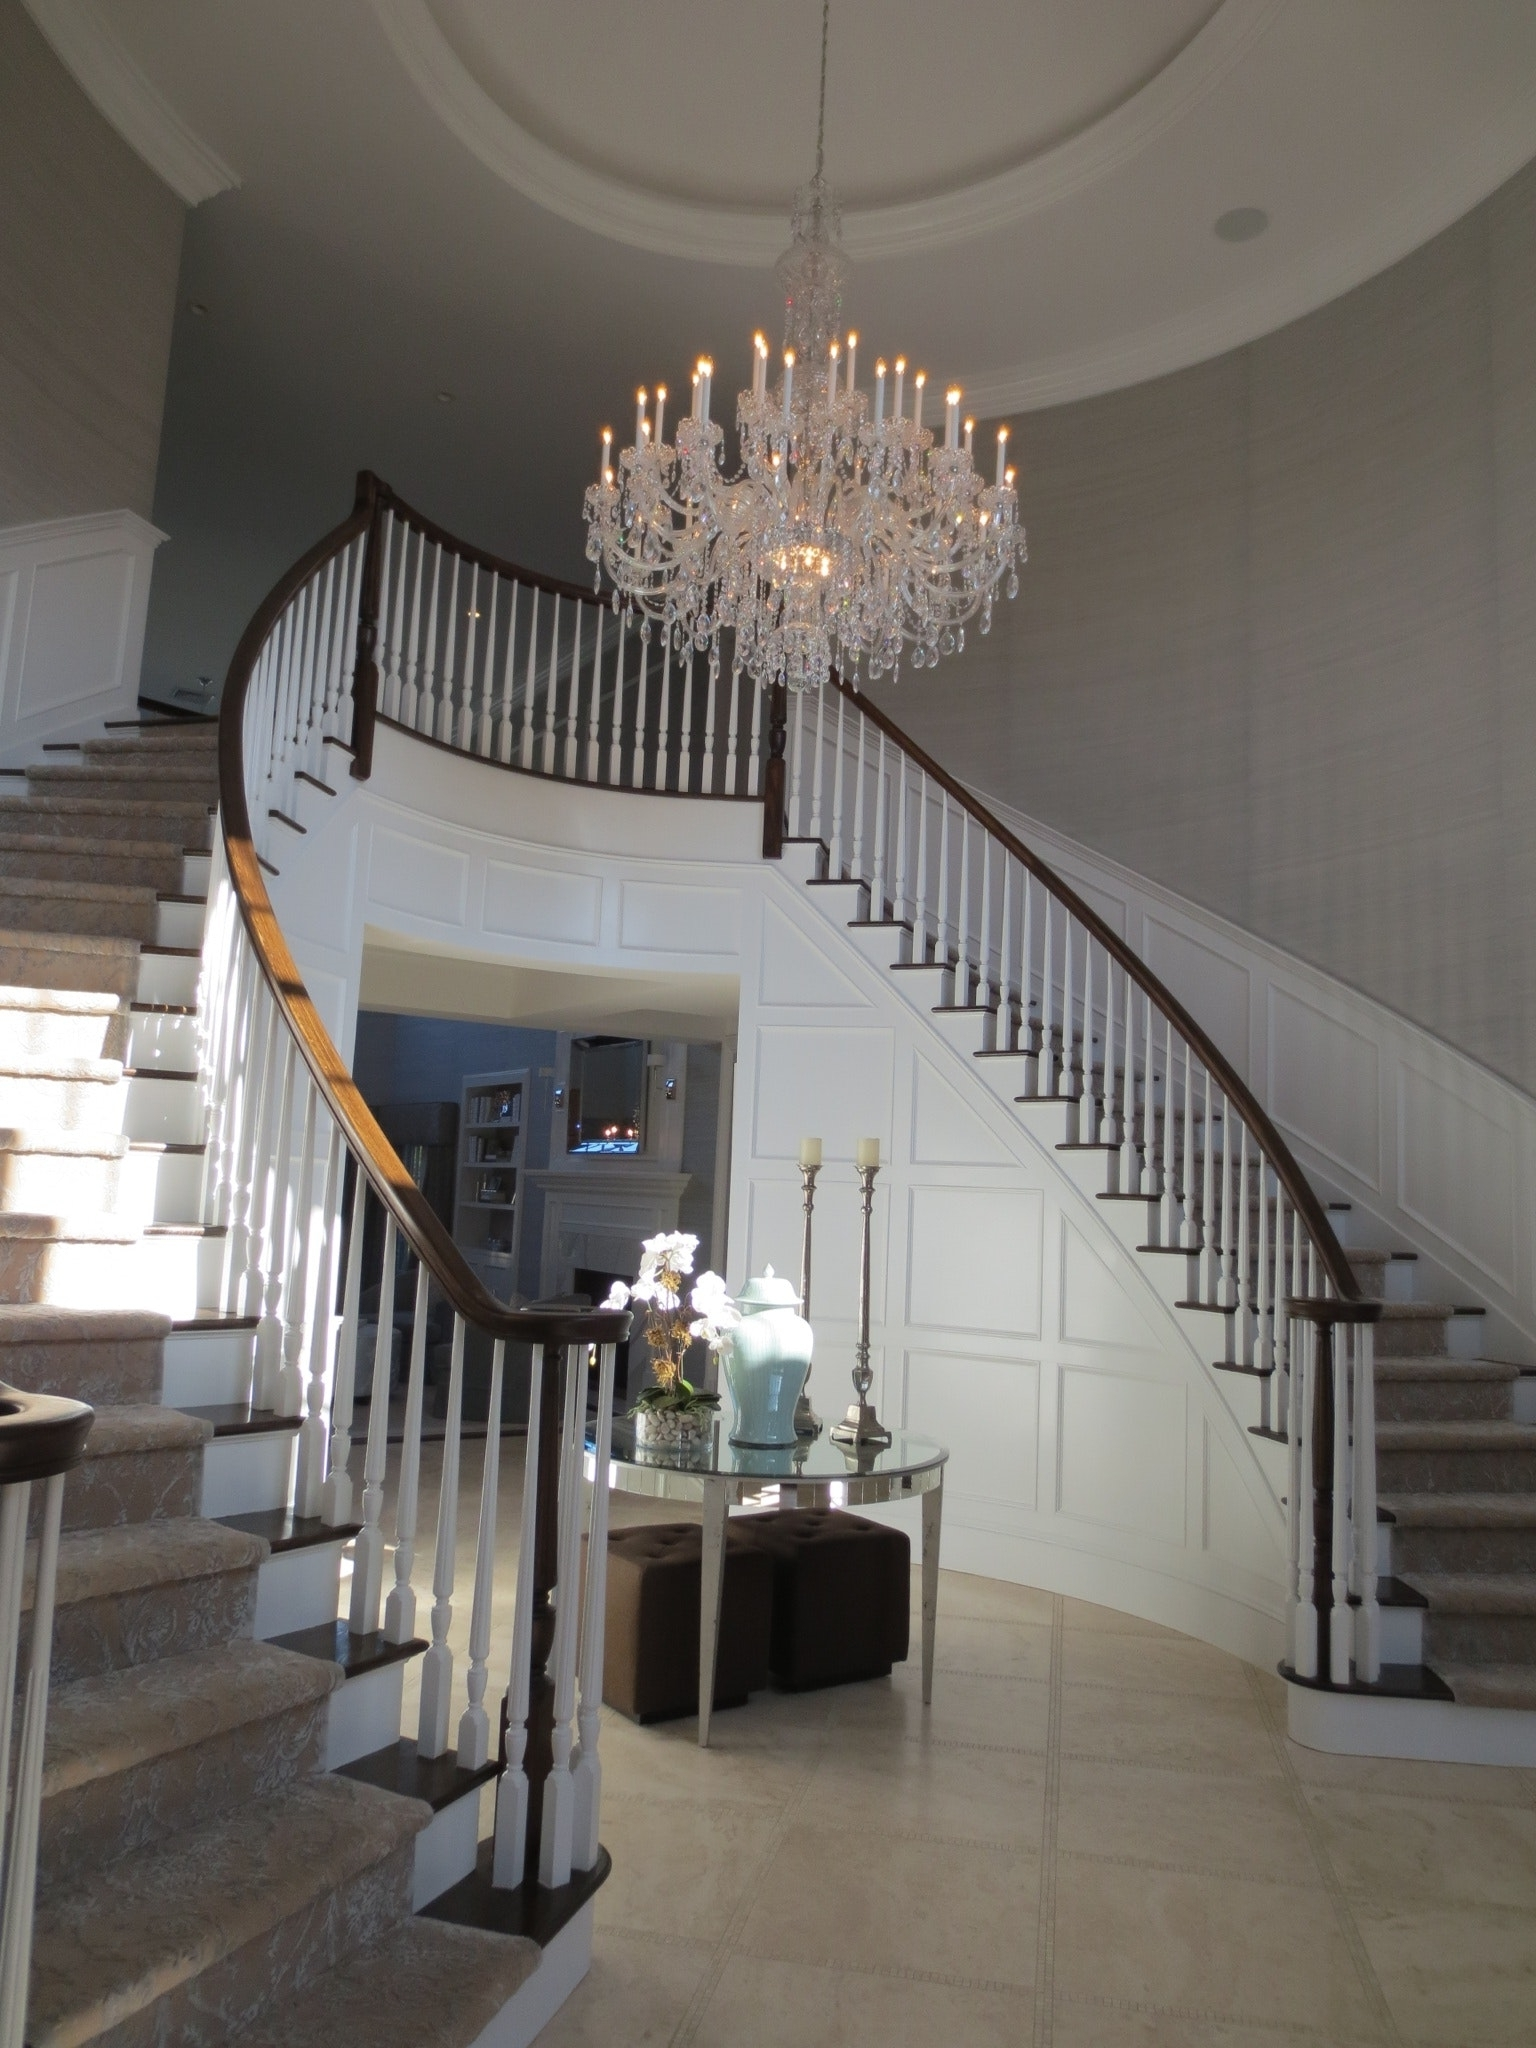 Compare S On Indoor Staircase Lighting Ping Image With Outstanding Pertaining To Well Known Stairway Chandelier (View 3 of 15)